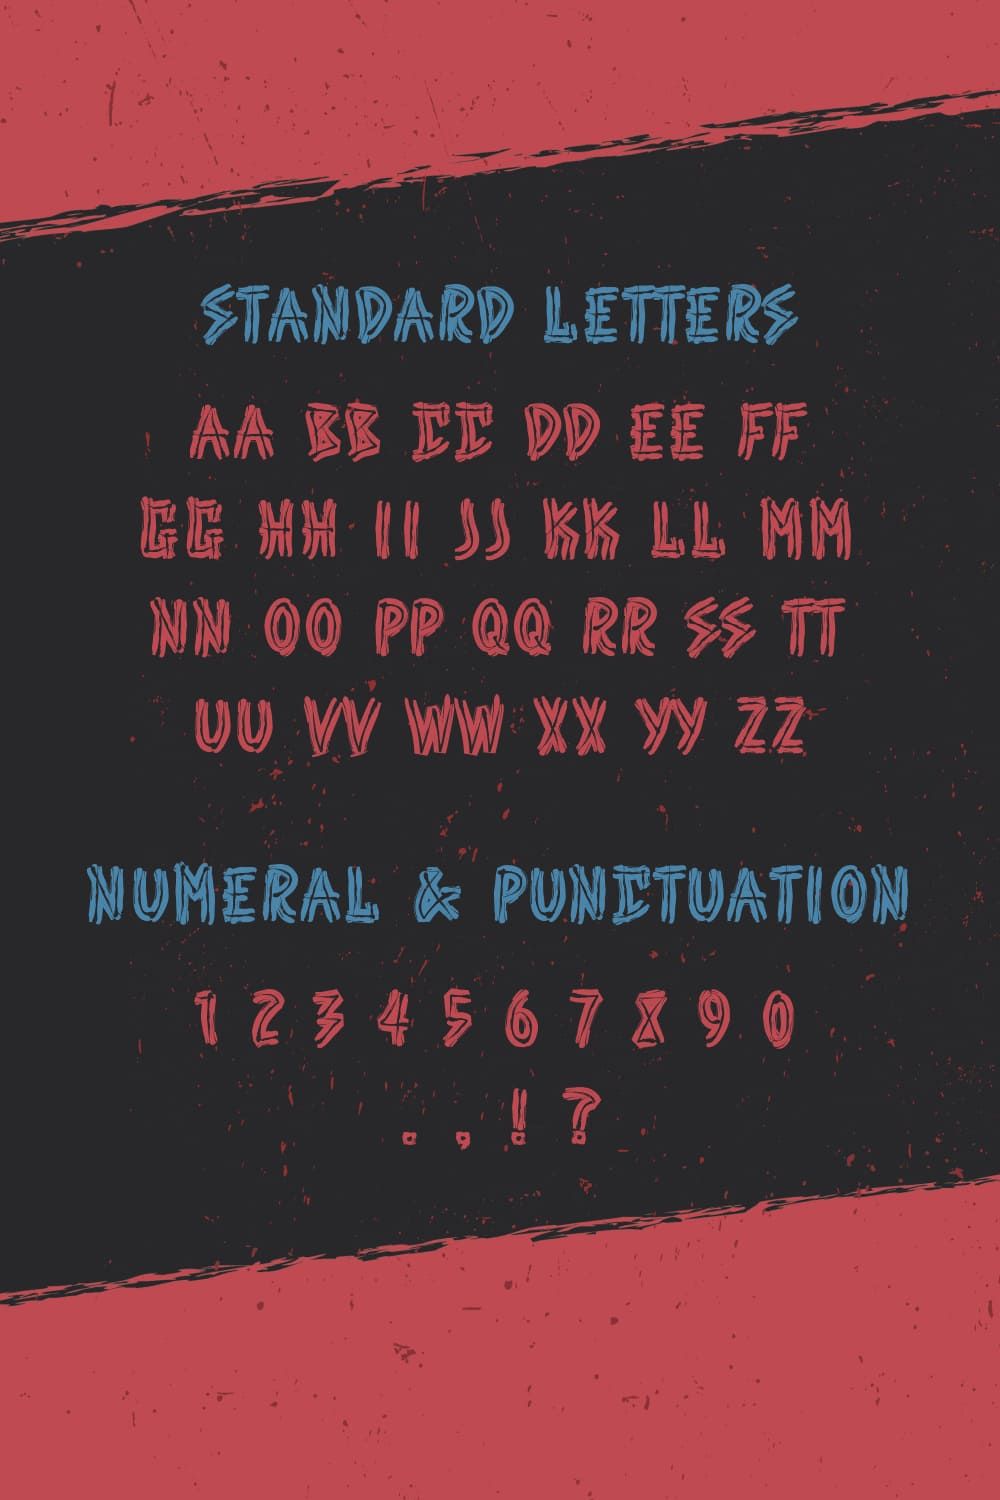 Standard letters of the Free Punk Font.